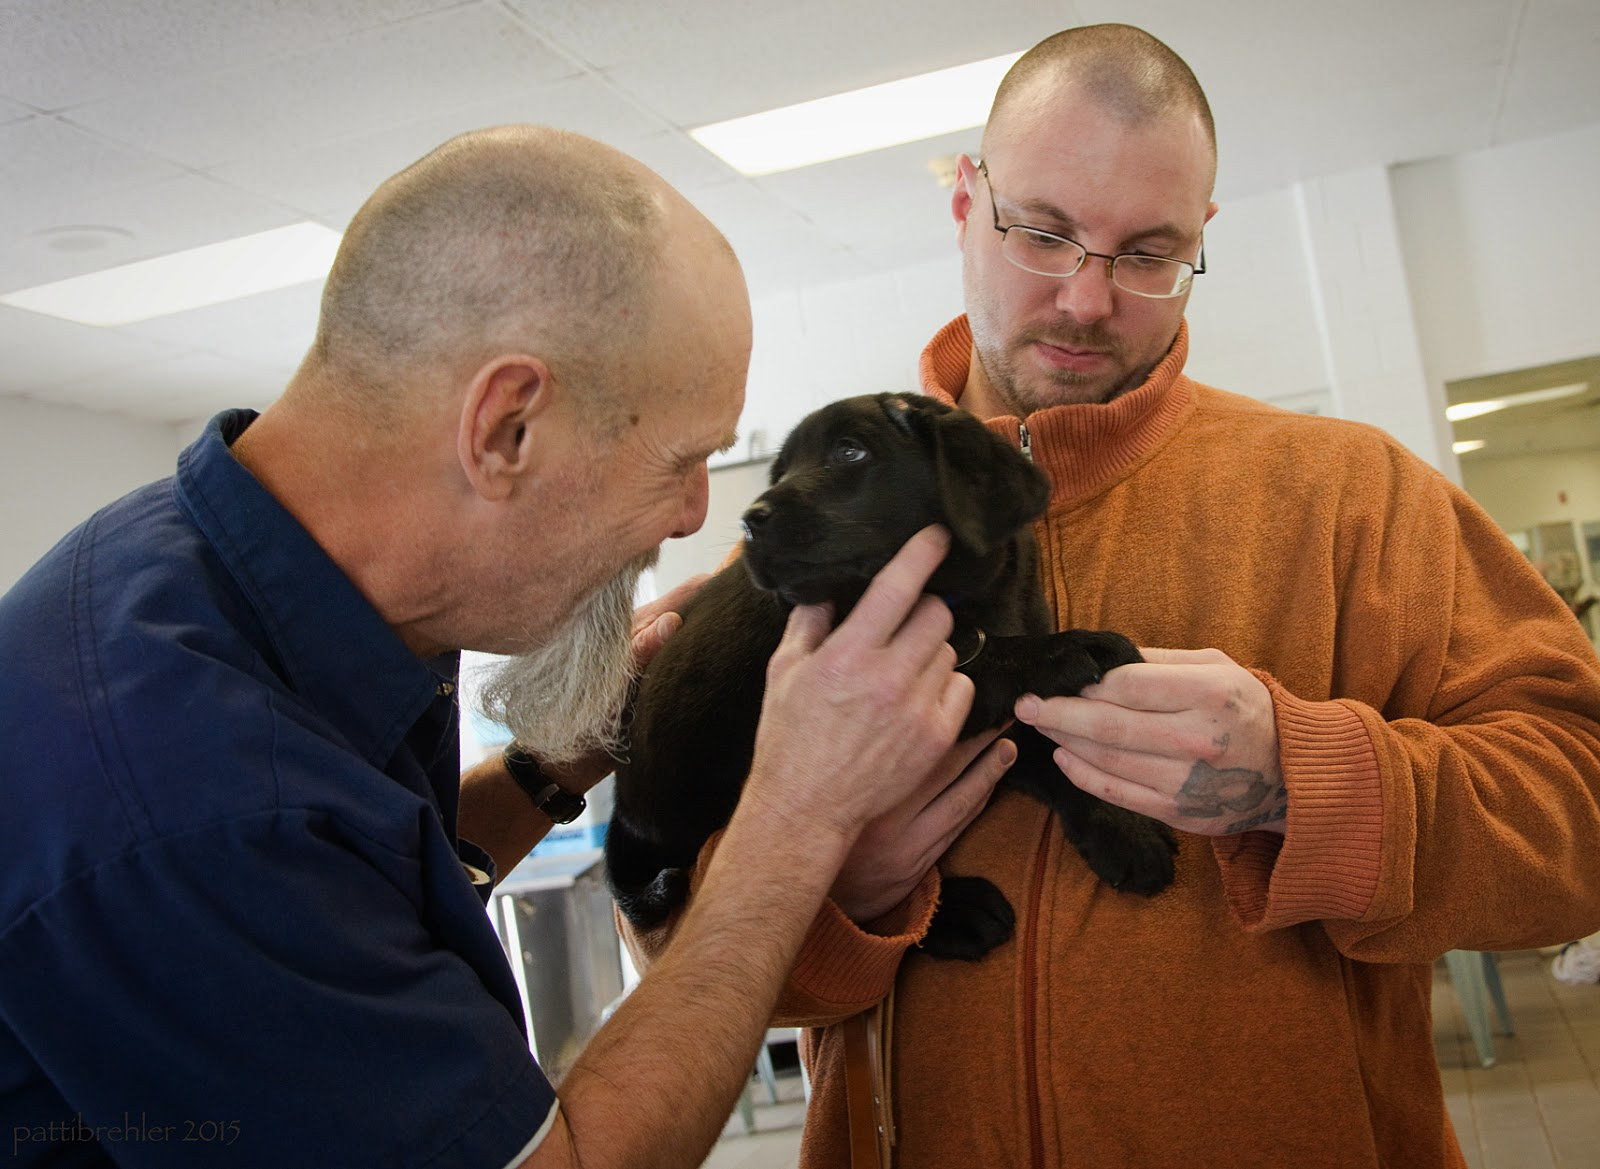 The man dressed in blue on the left is now looking at the black lab puppy, which is being held by the man on the right. The man on the left is petting the puppy under it's chin with his right hand. The man on the right is holding the puppy's left paw in his left hand and lookng down at it.